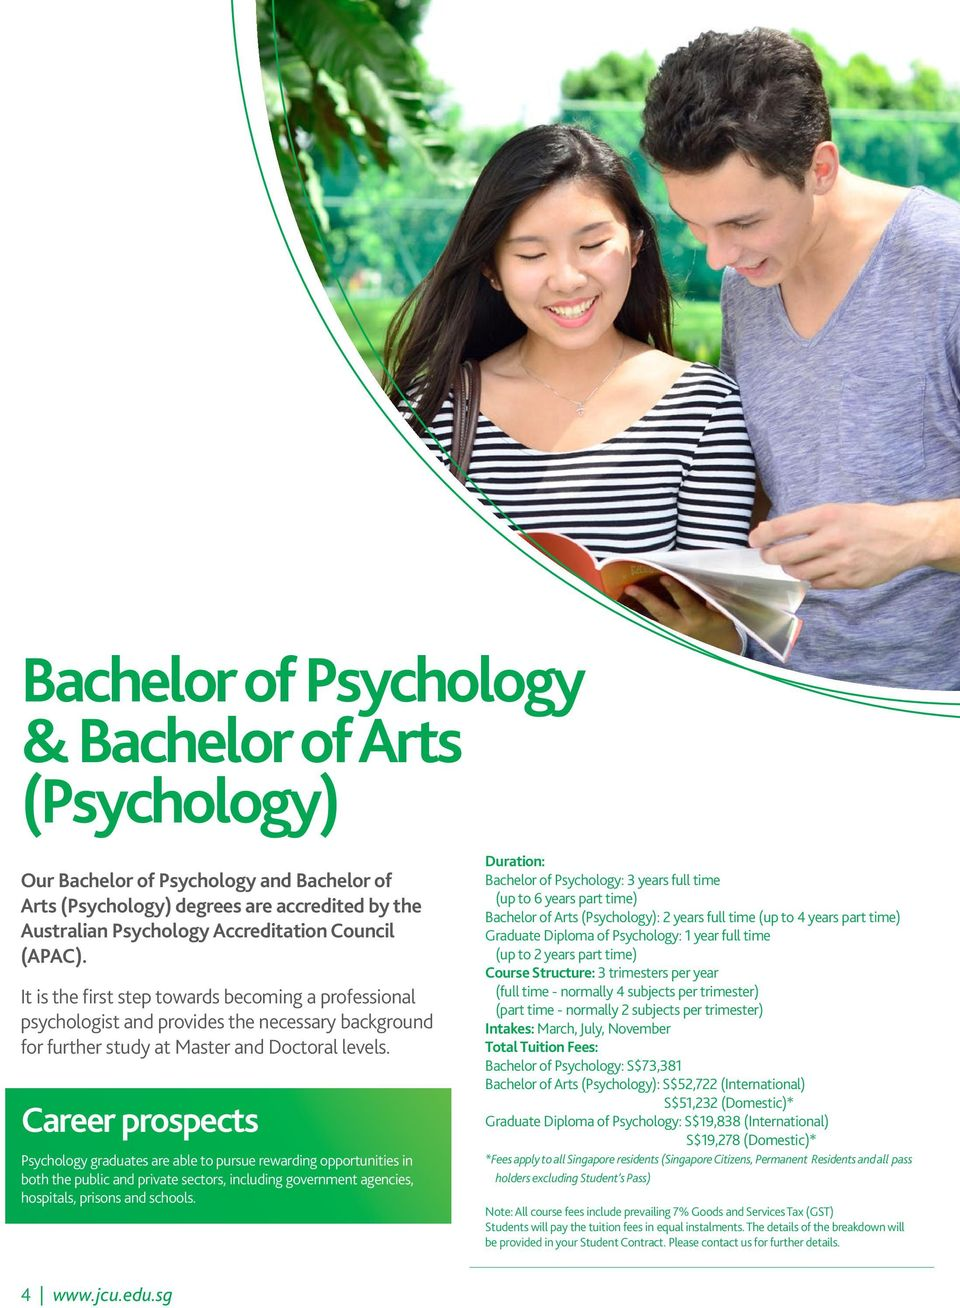 Career prospects Psychology graduates are able to pursue rewarding opportunities in both the public and private sectors, including government agencies, hospitals, prisons and schools.